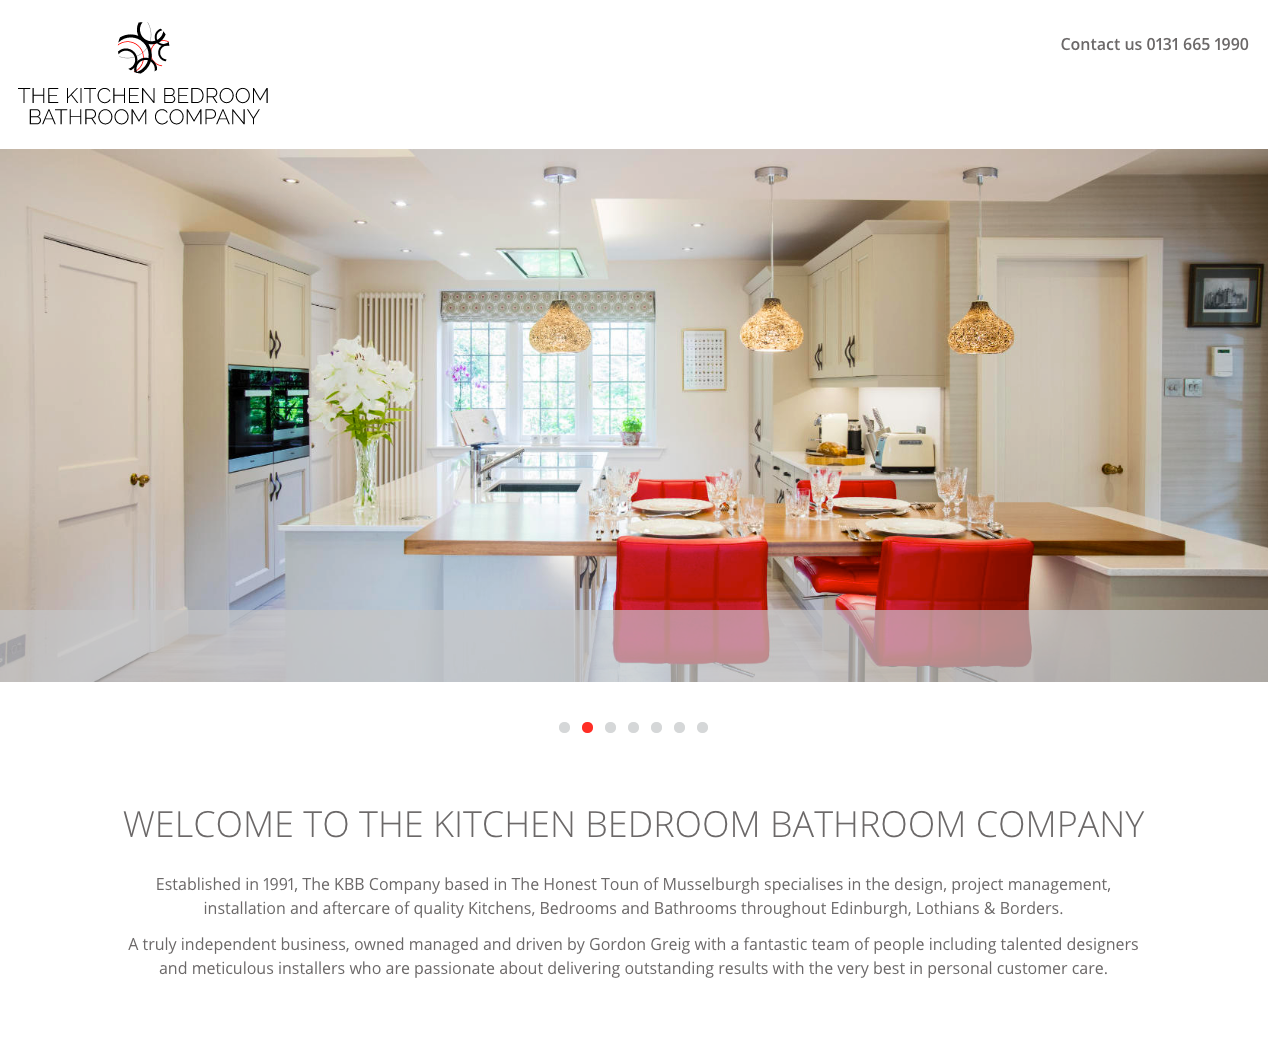 The Kitchen Bedroom Bathroom Company, Edinburgh